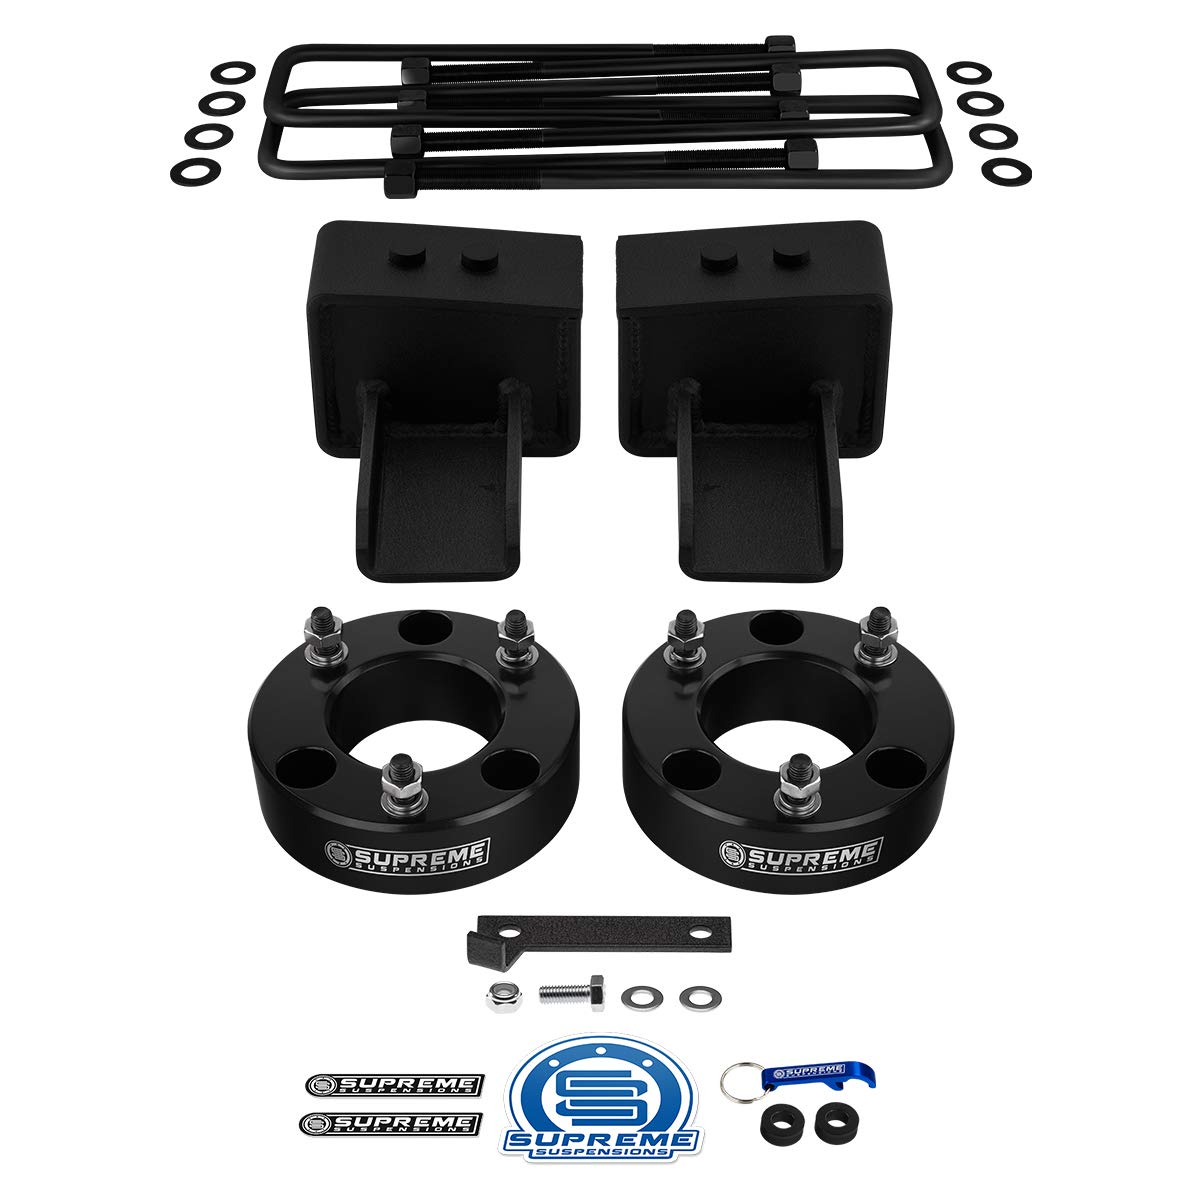 """Supreme Suspensions - Full Lift Kit for 2004-2020 Ford F-150 [4WD] 2.5"""" Front + 2.5"""" Rear Suspension Lift Kit (Black) 